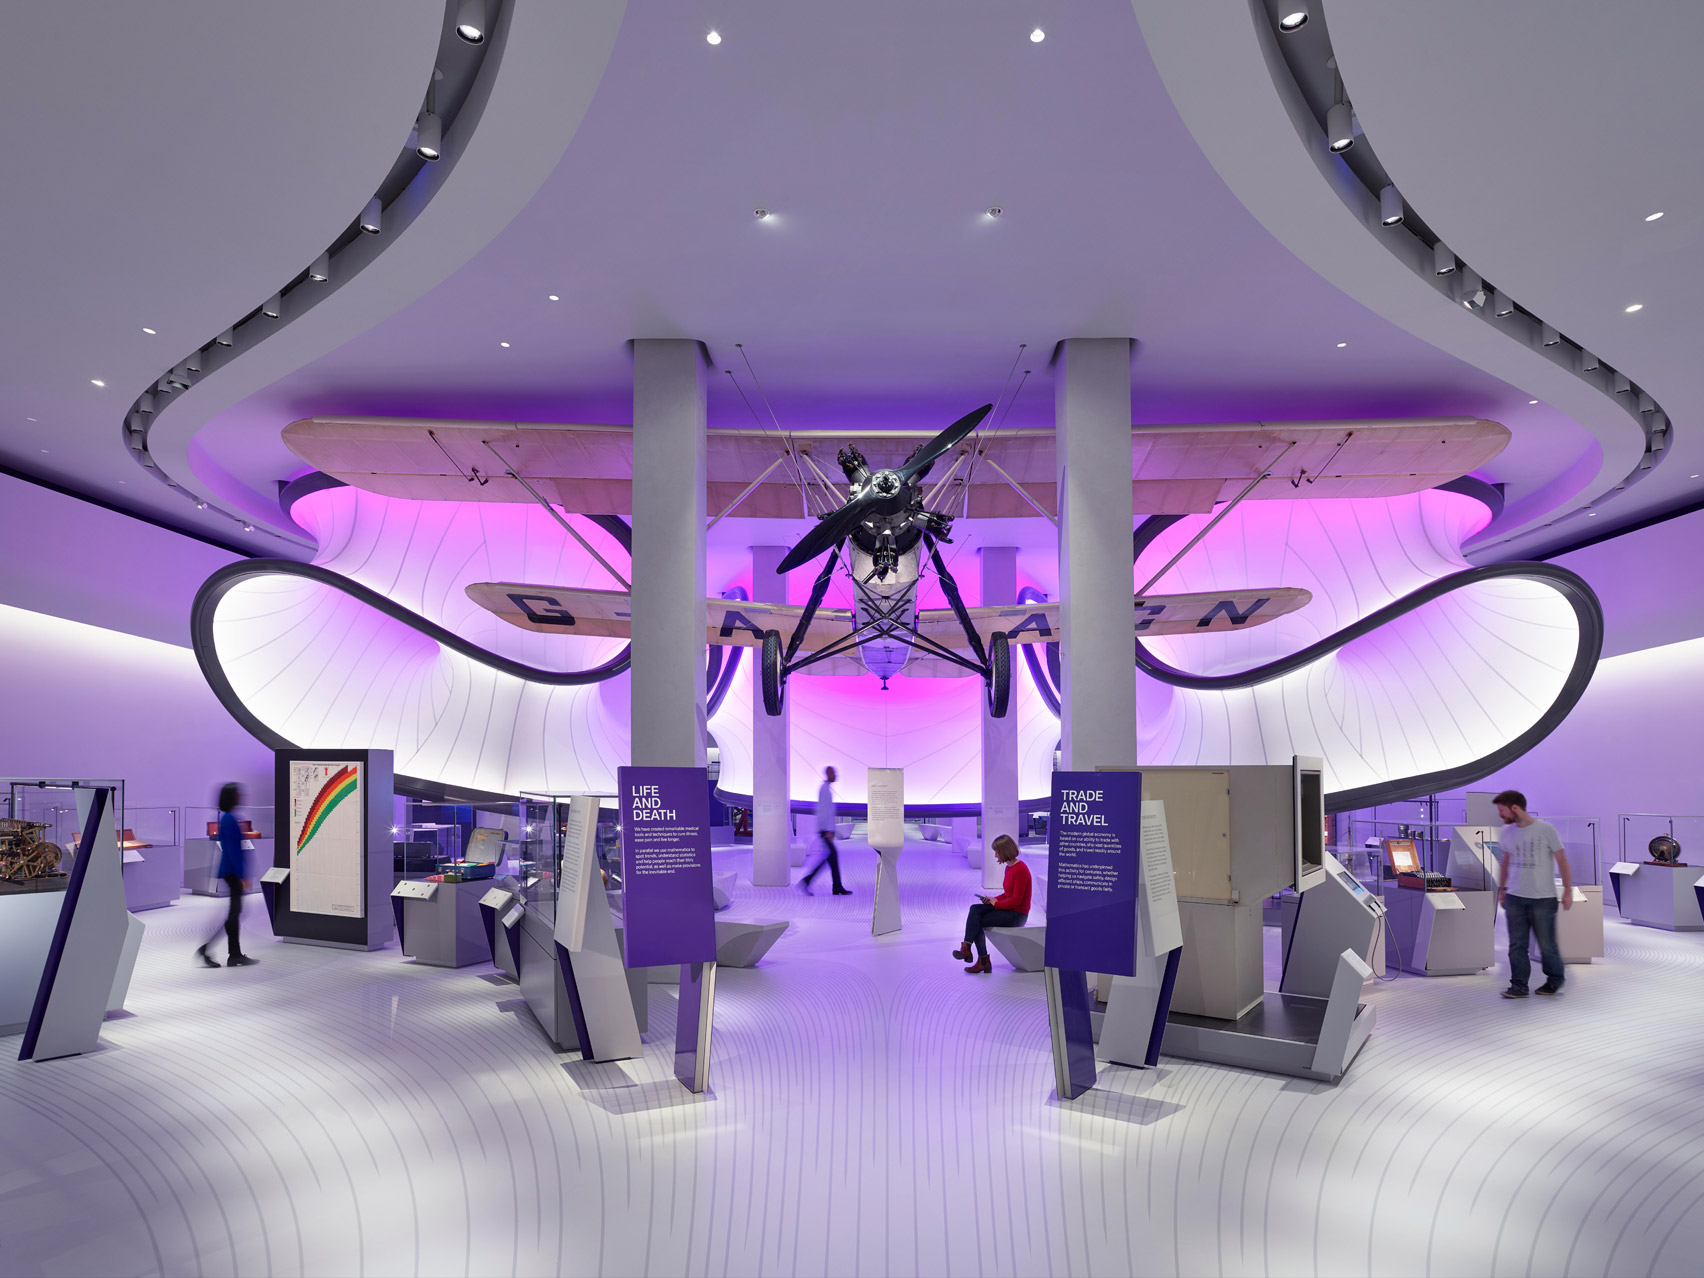 Zaha Hadid Architects' mathematics gallery opens at London Science Museum